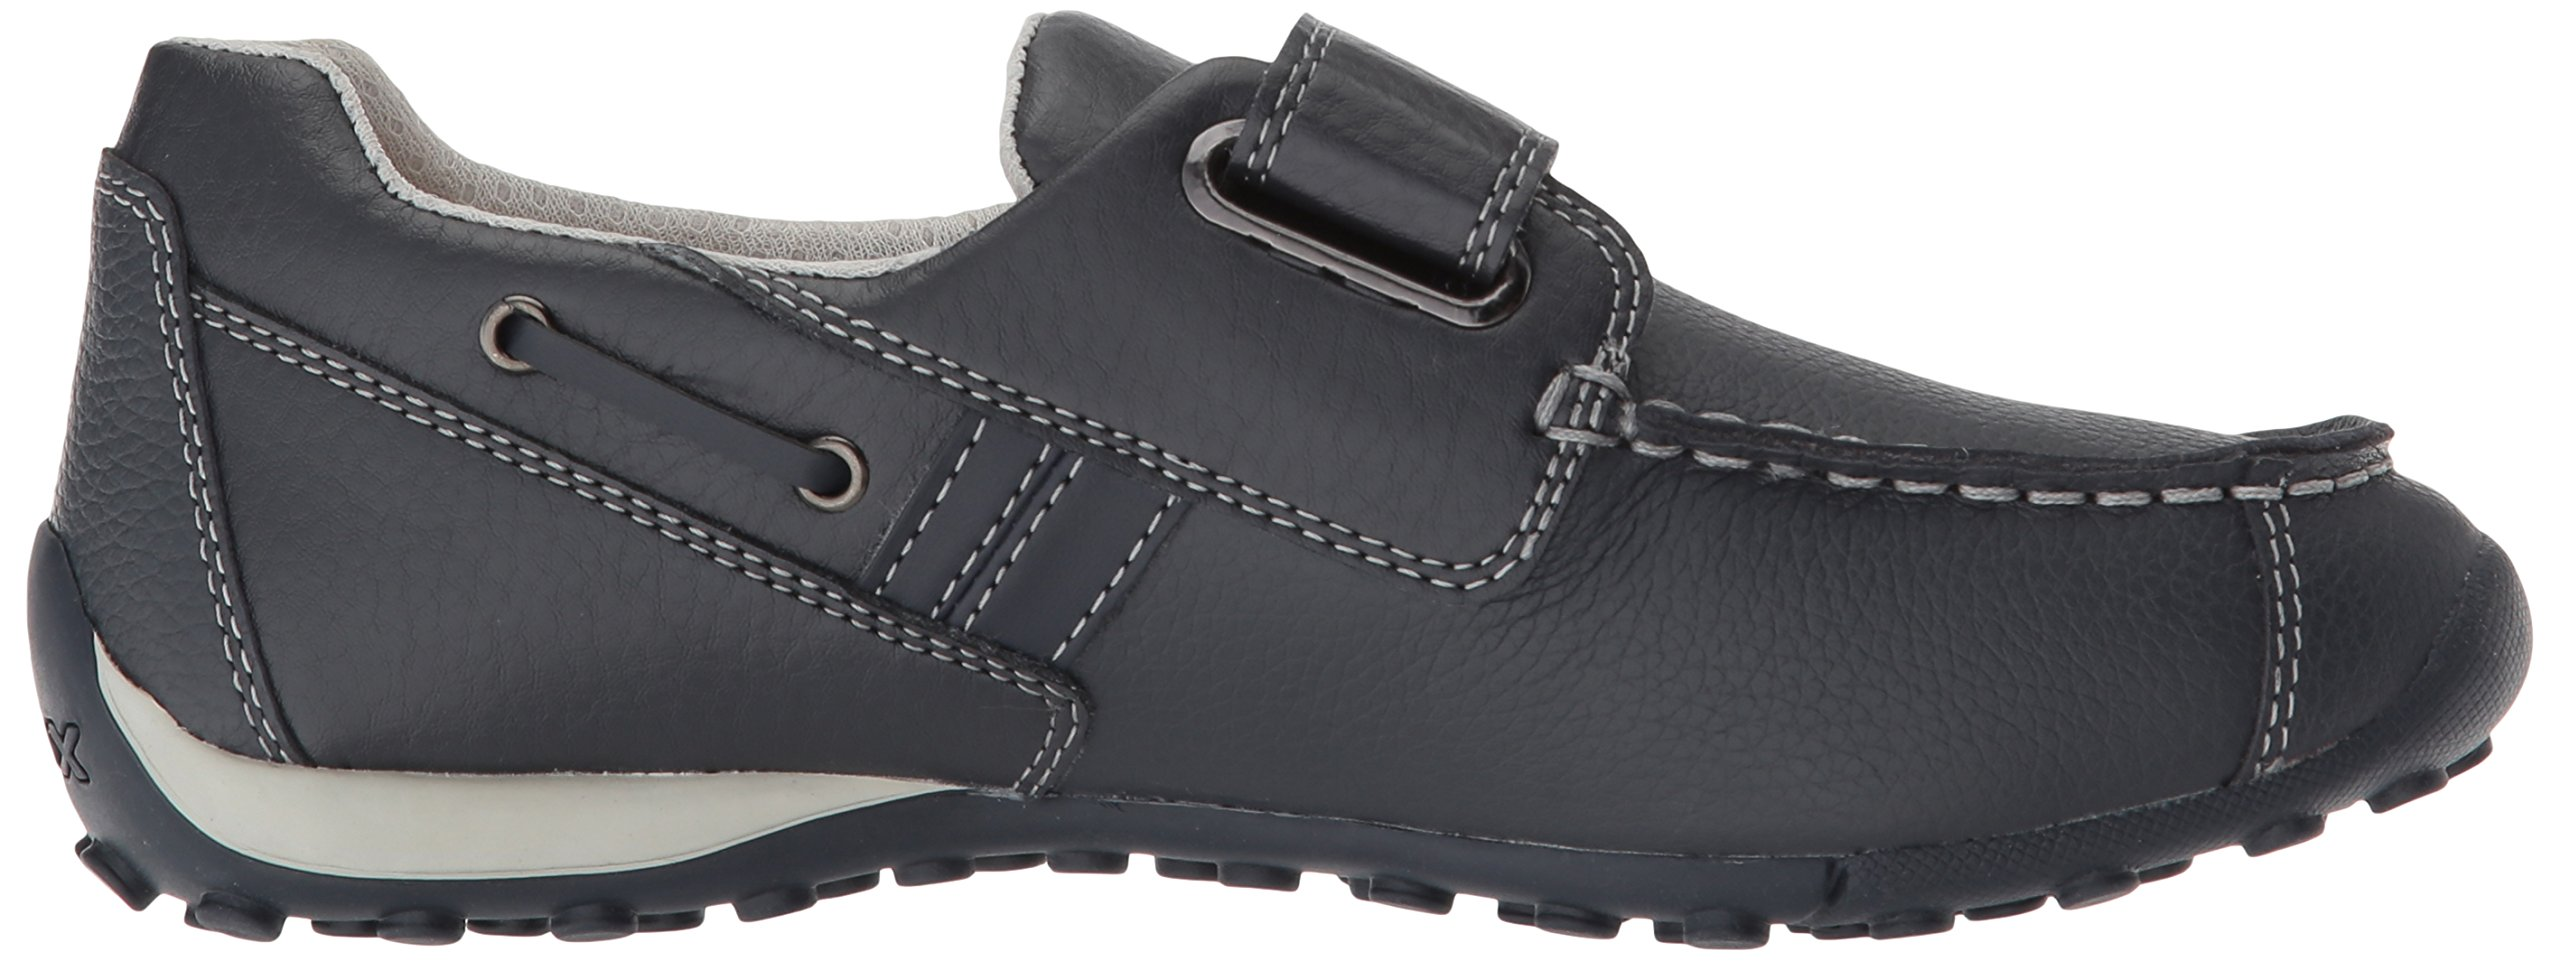 Geox Boys' JR SNAKEMOCBOY 19 Loafer Navy/Grey 27 BR/10 M US Little Kid by Geox (Image #7)